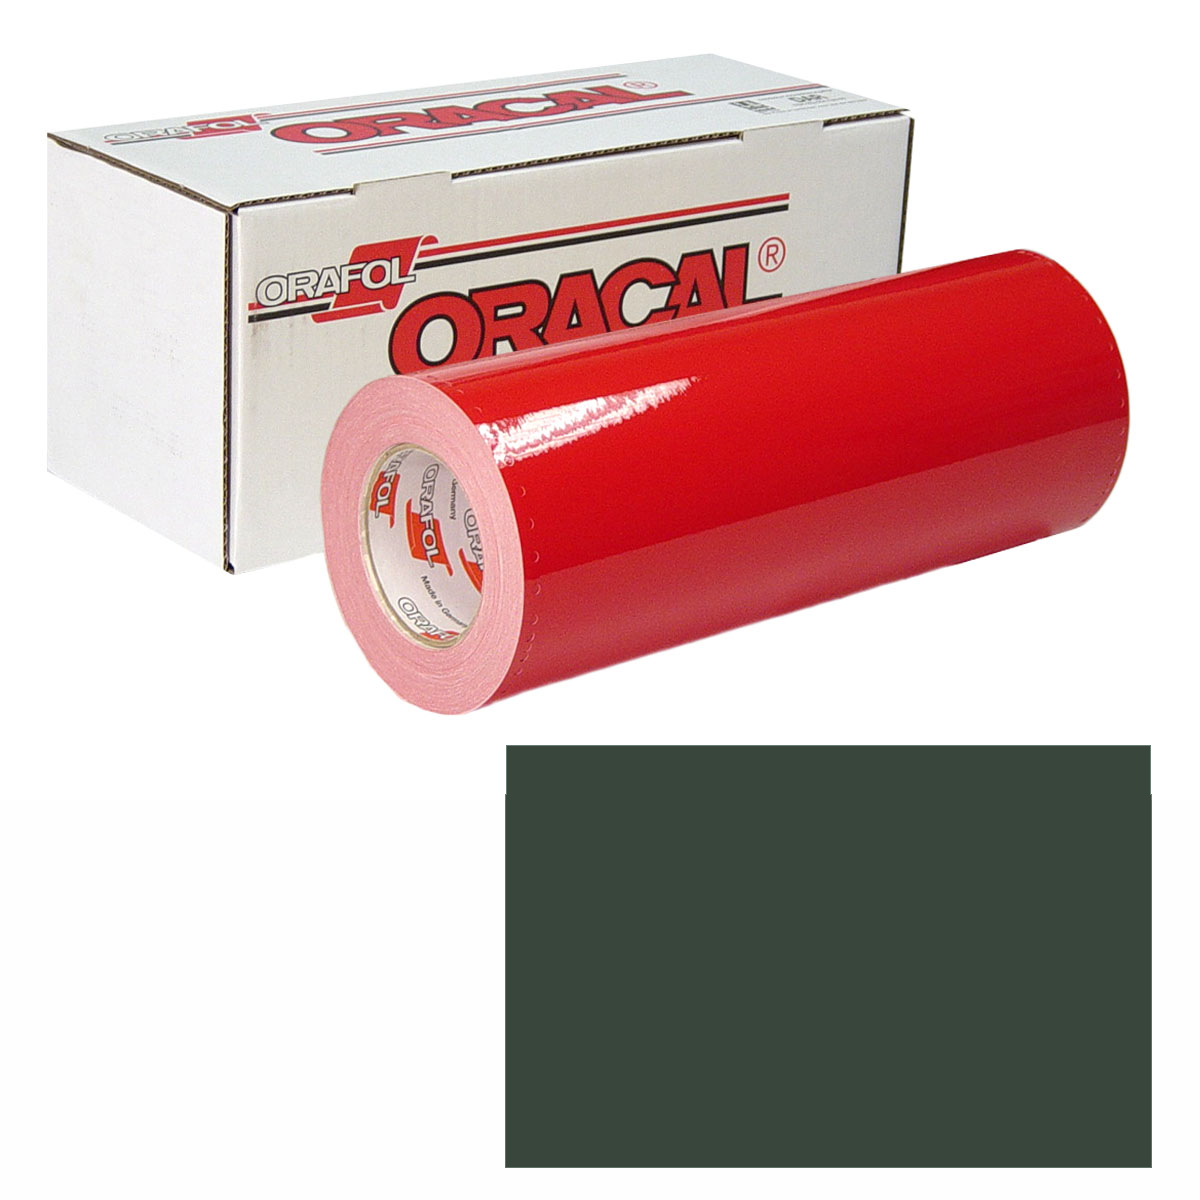 ORACAL 951M Unp 48in X 10yd 678 Autumn Green